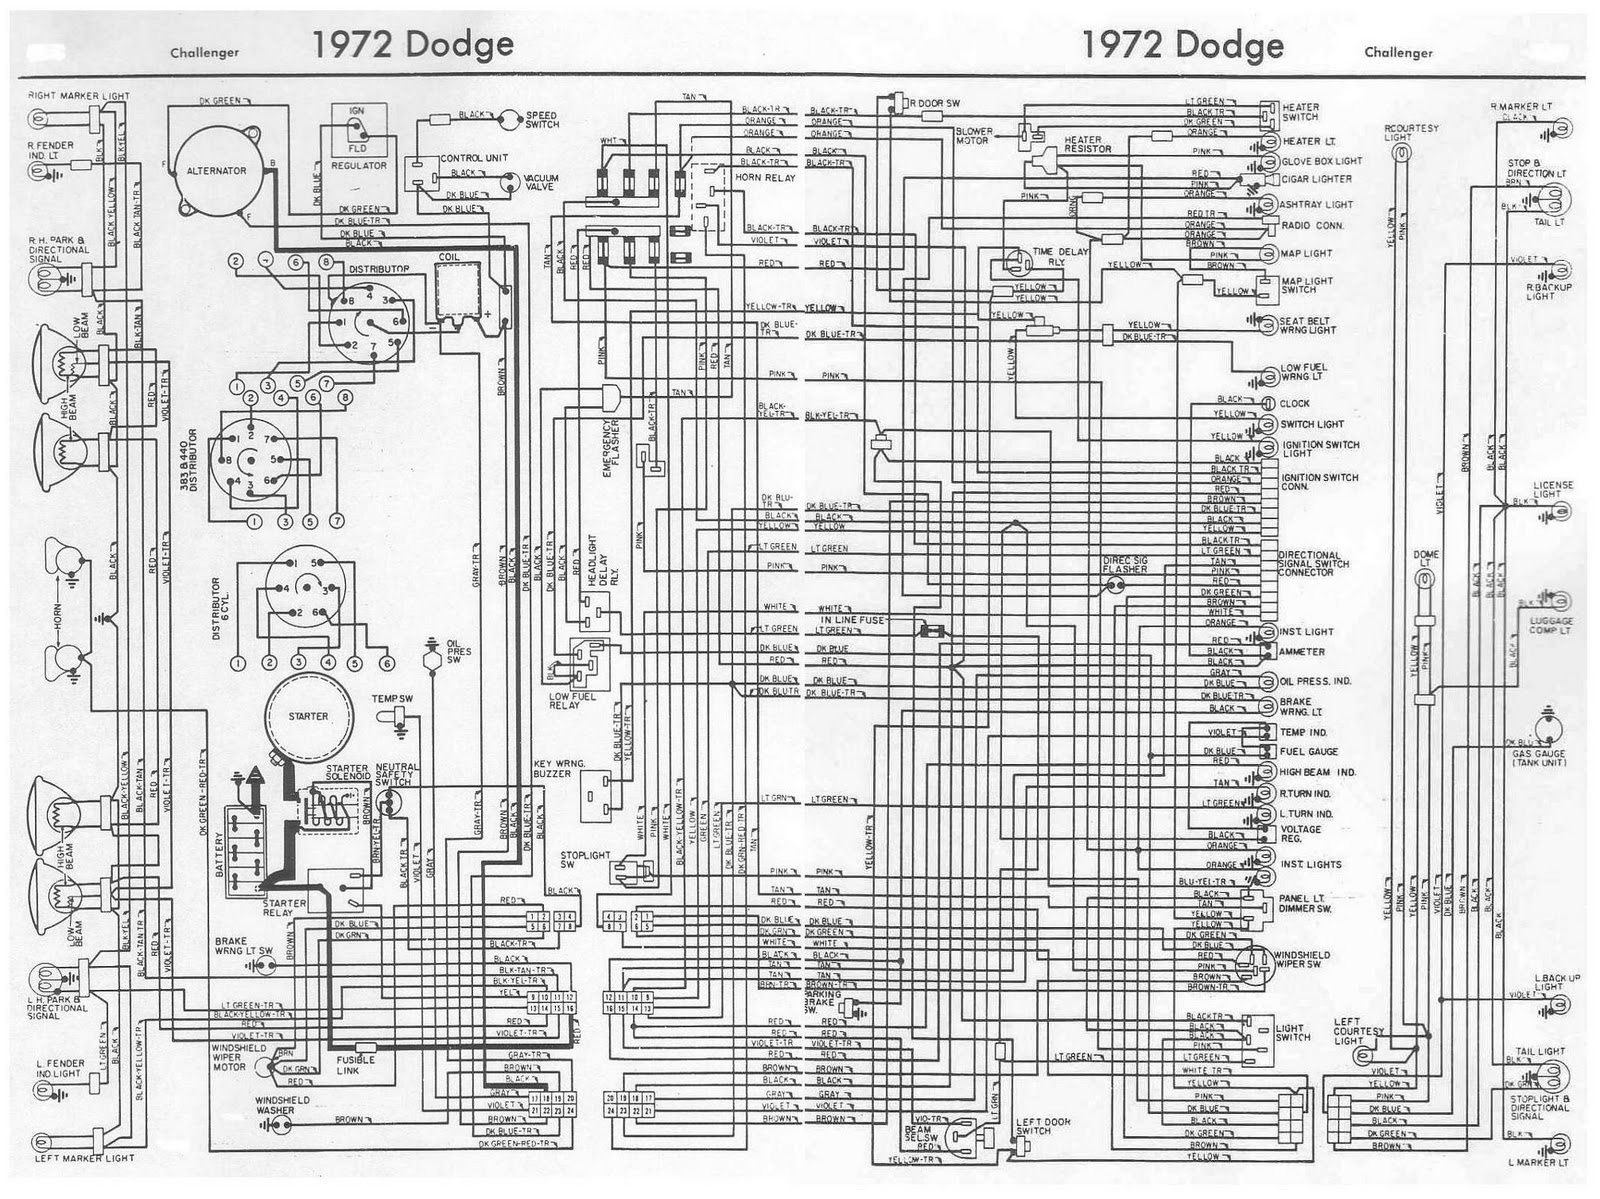 1969 Dodge Charger Fuse Box Diagram Wiring Library 1973 Chevy Diagrams Challenger Schematics U2022 Rh Parntesis Co